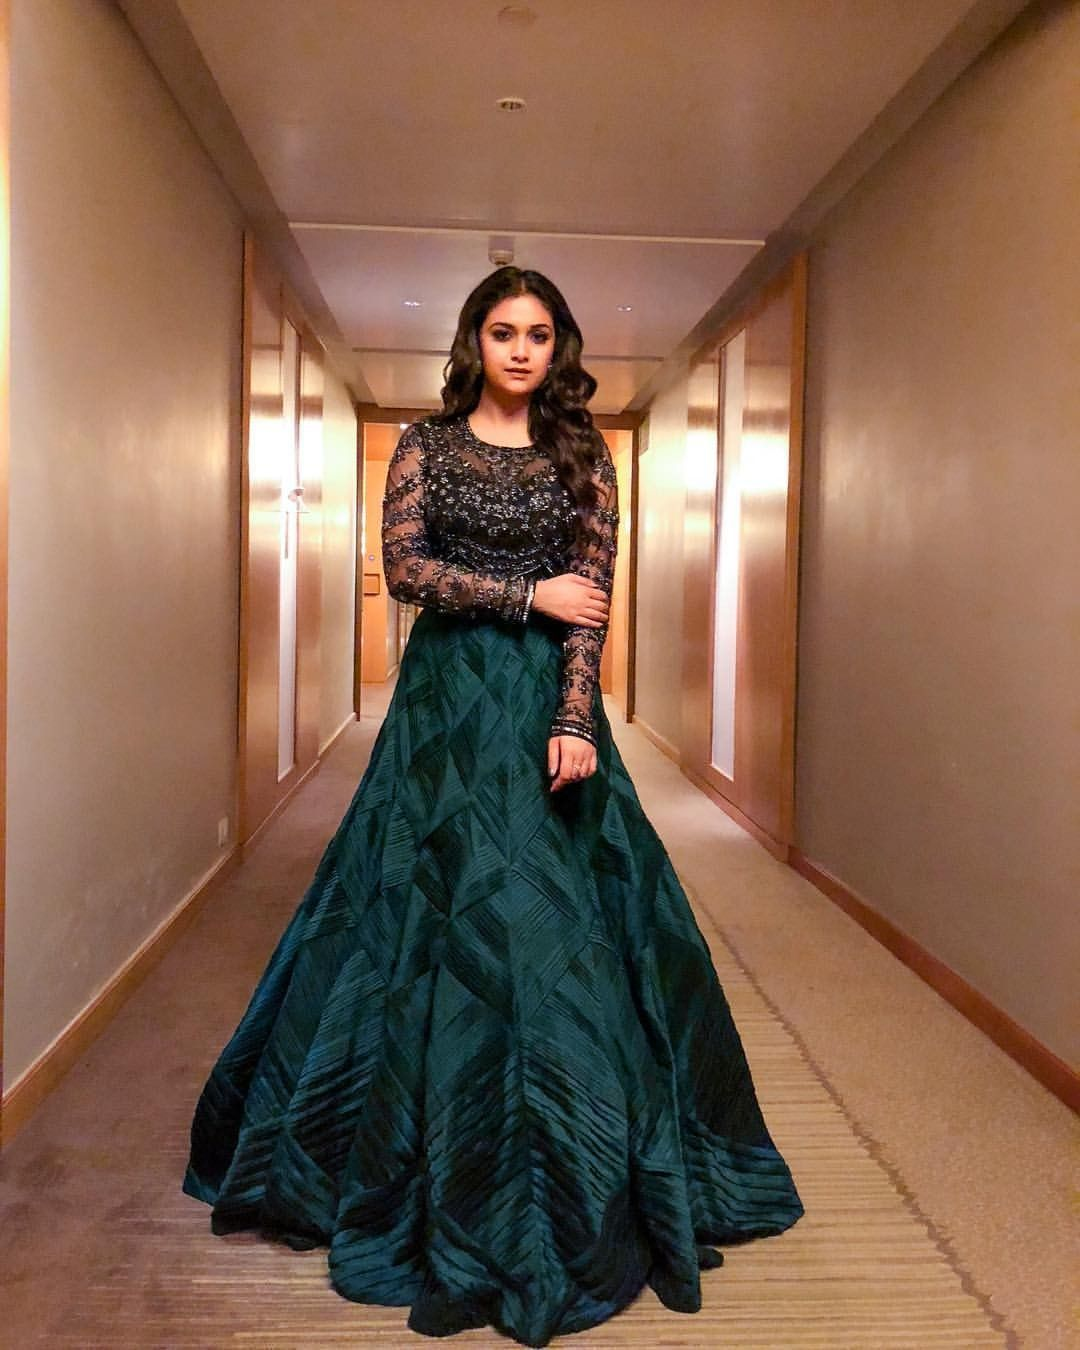 pin by md on keerthy suresh in 2019 | bride reception